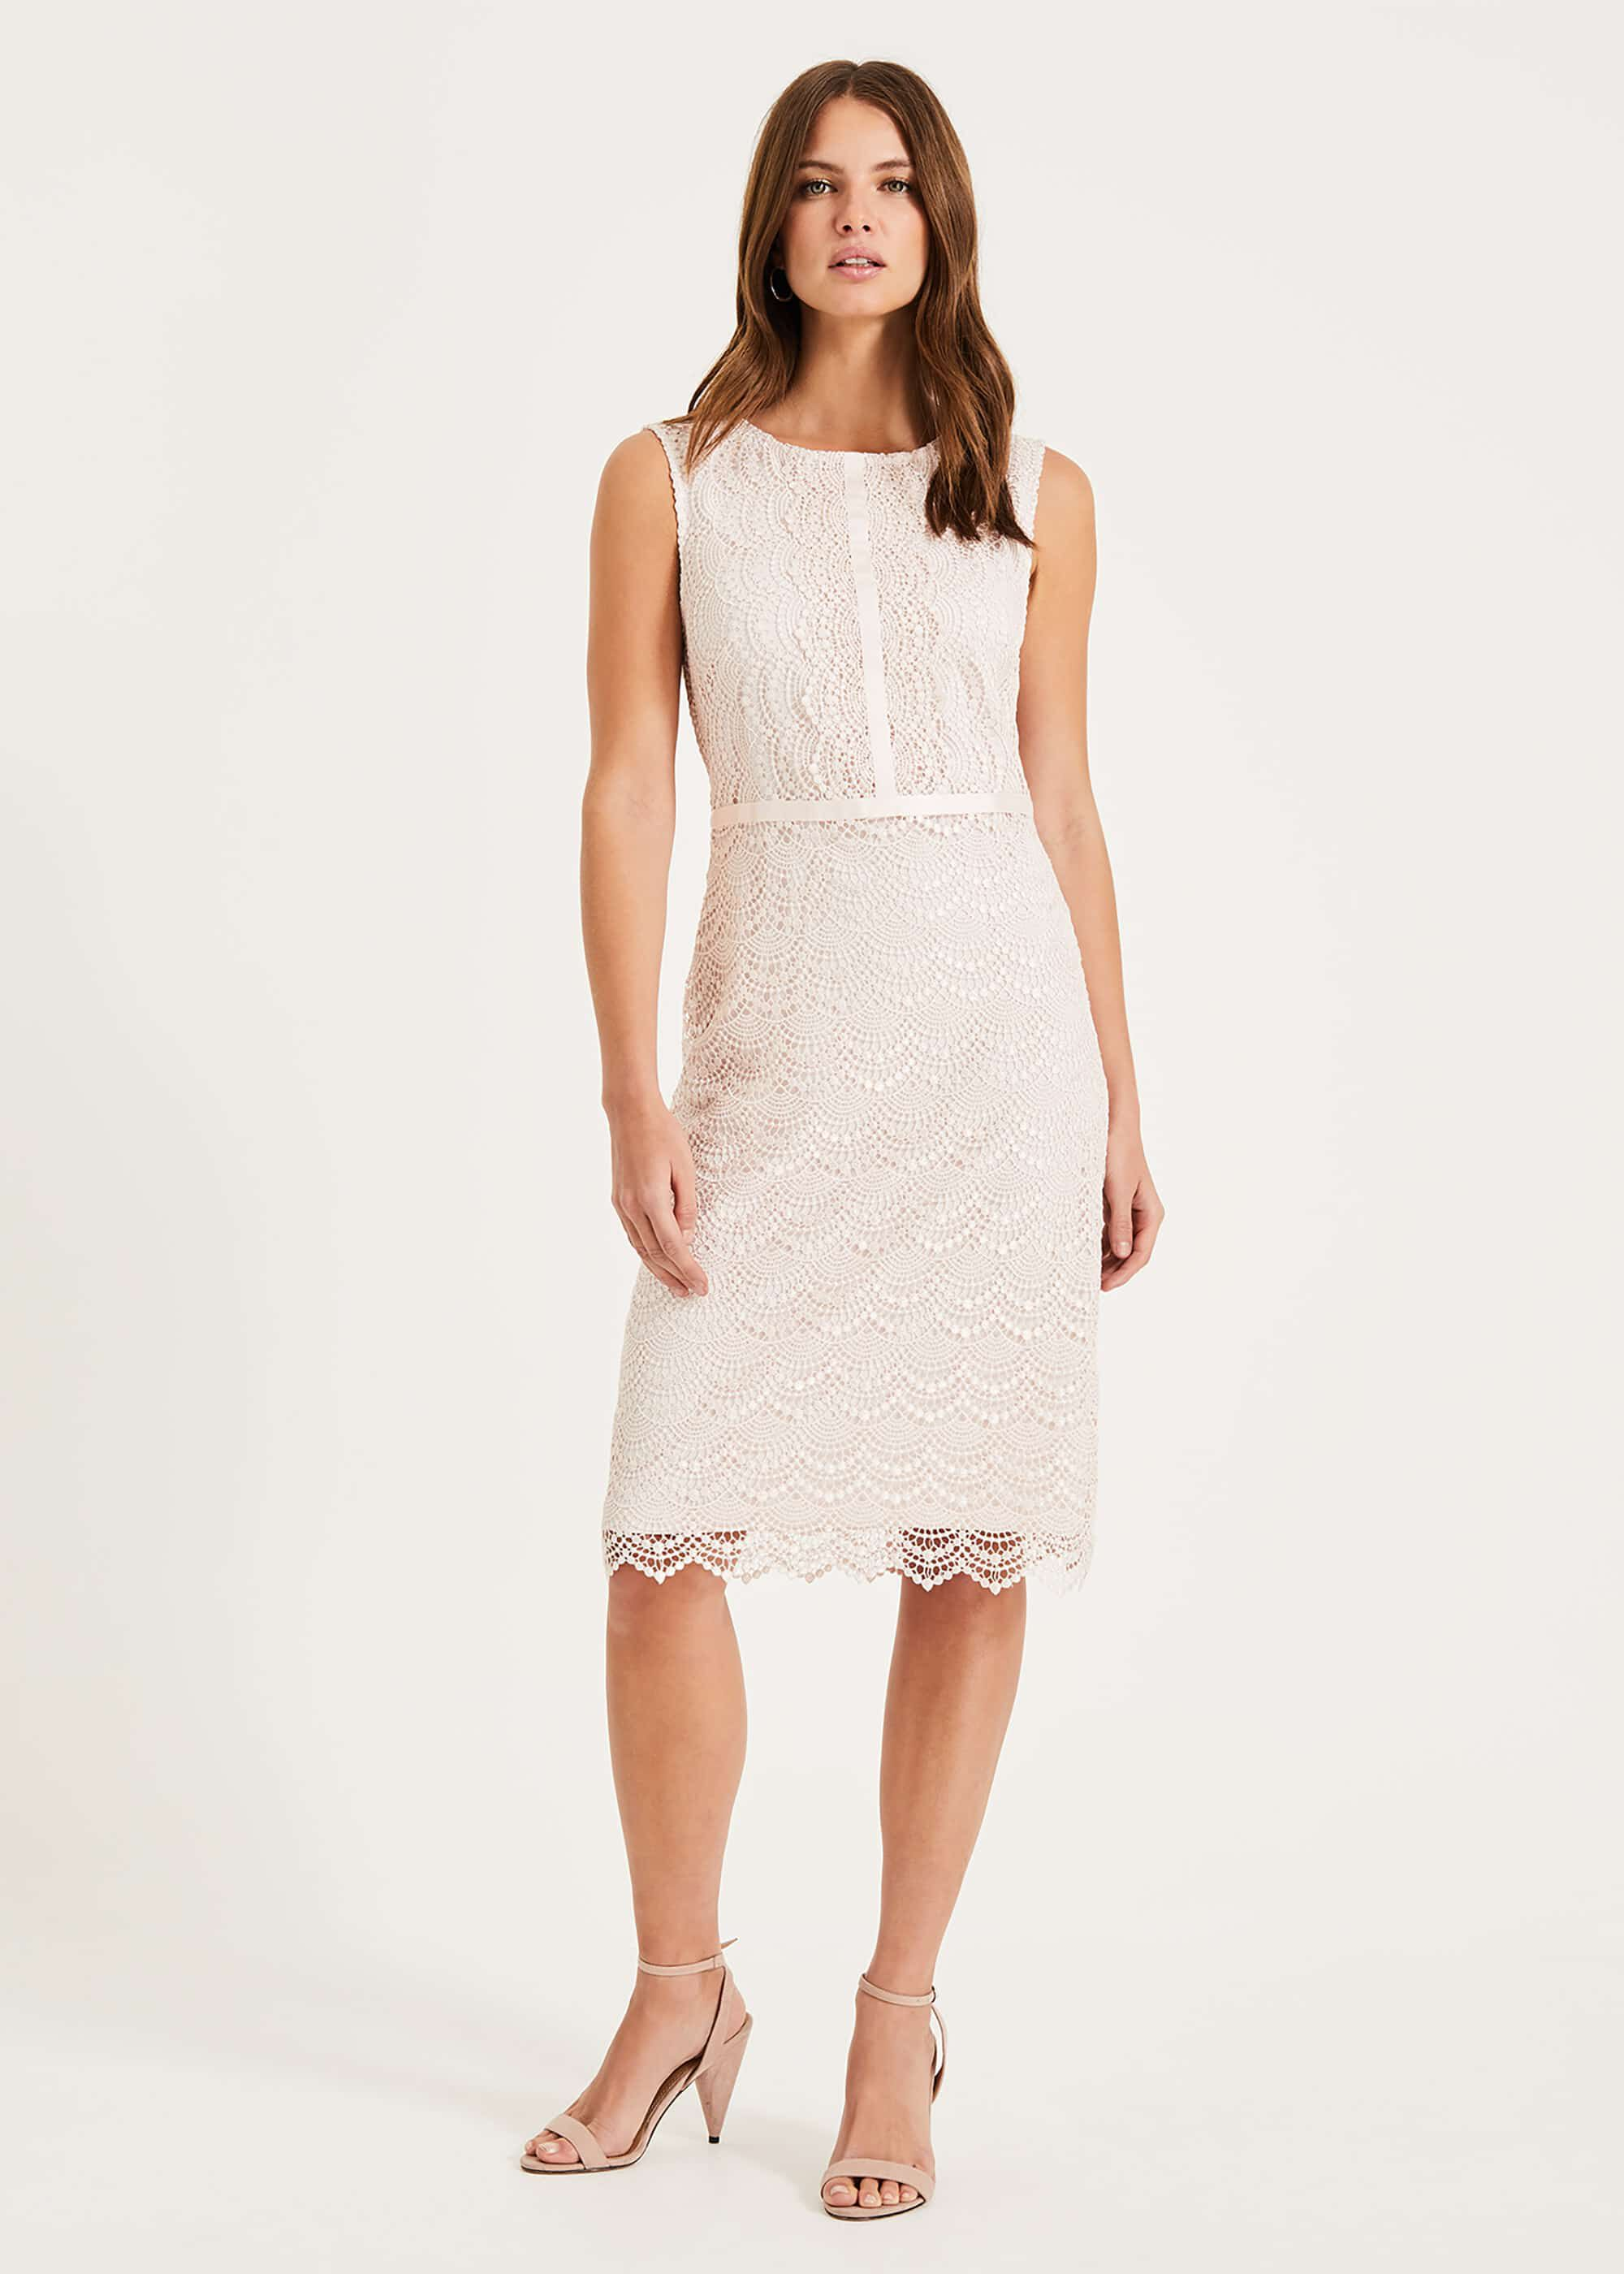 Phase Eight Helga Scallop Lace Dress, Pink, Shift, Occasion Dress